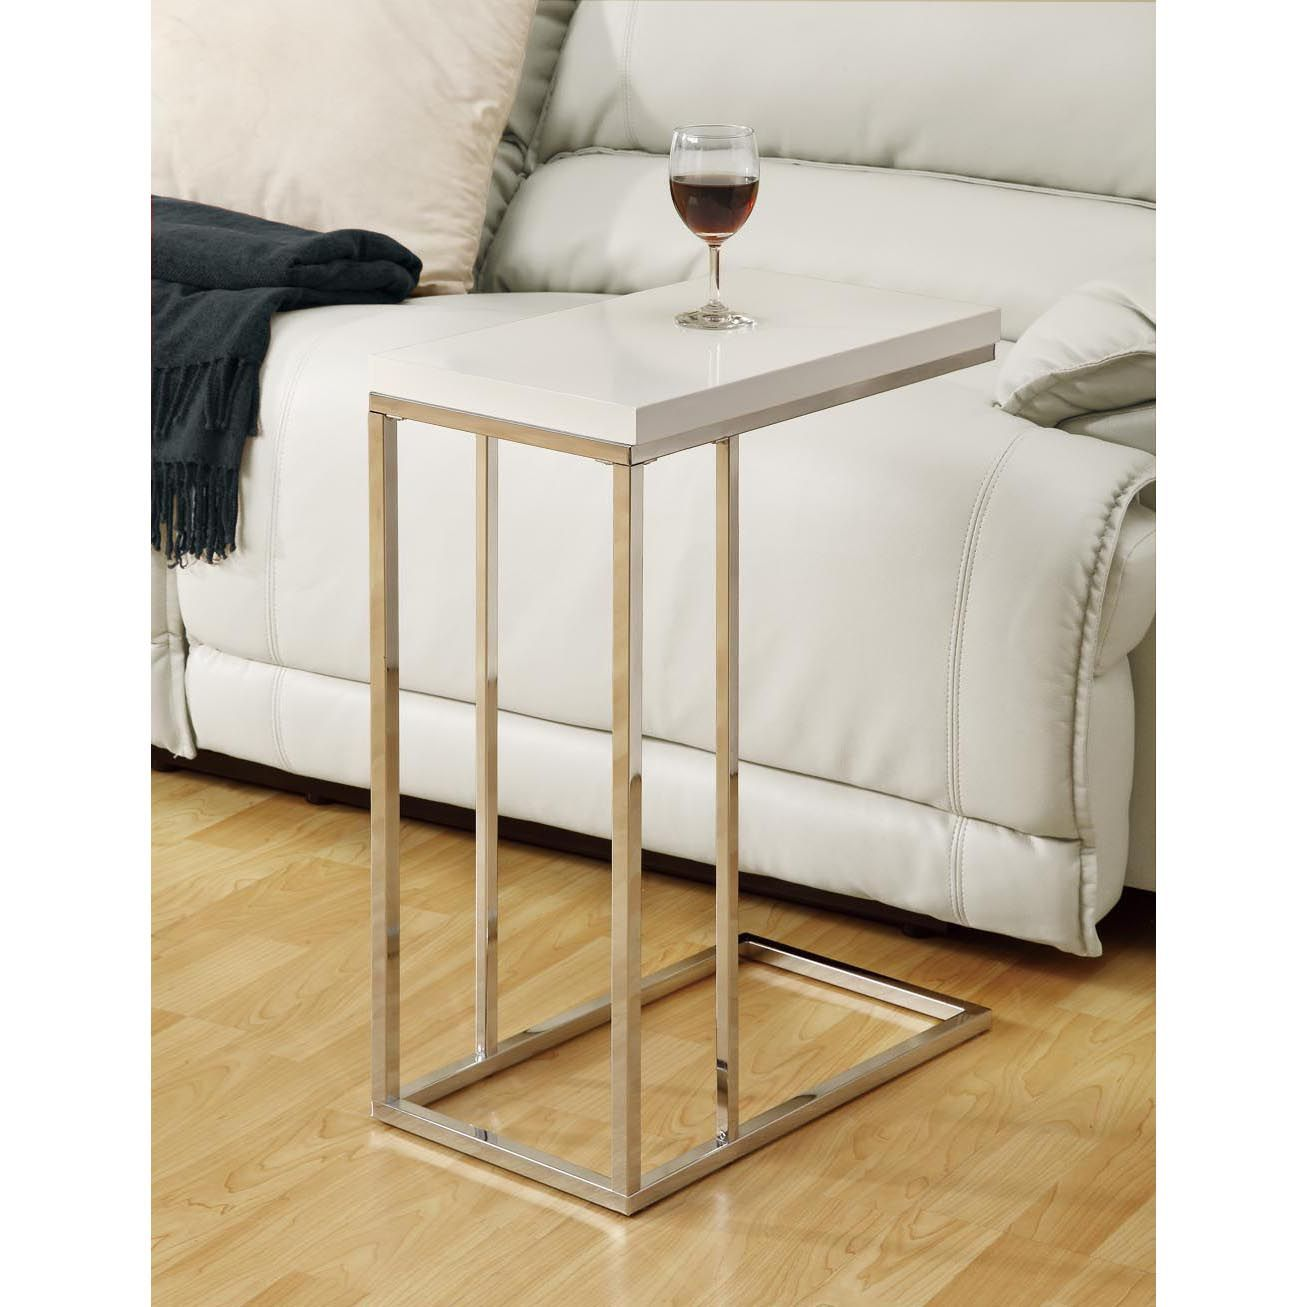 combine modern style and functionality with this white metal accent table made from particle board has square tiffany butterfly lamp lamps contemporary design green dorm room